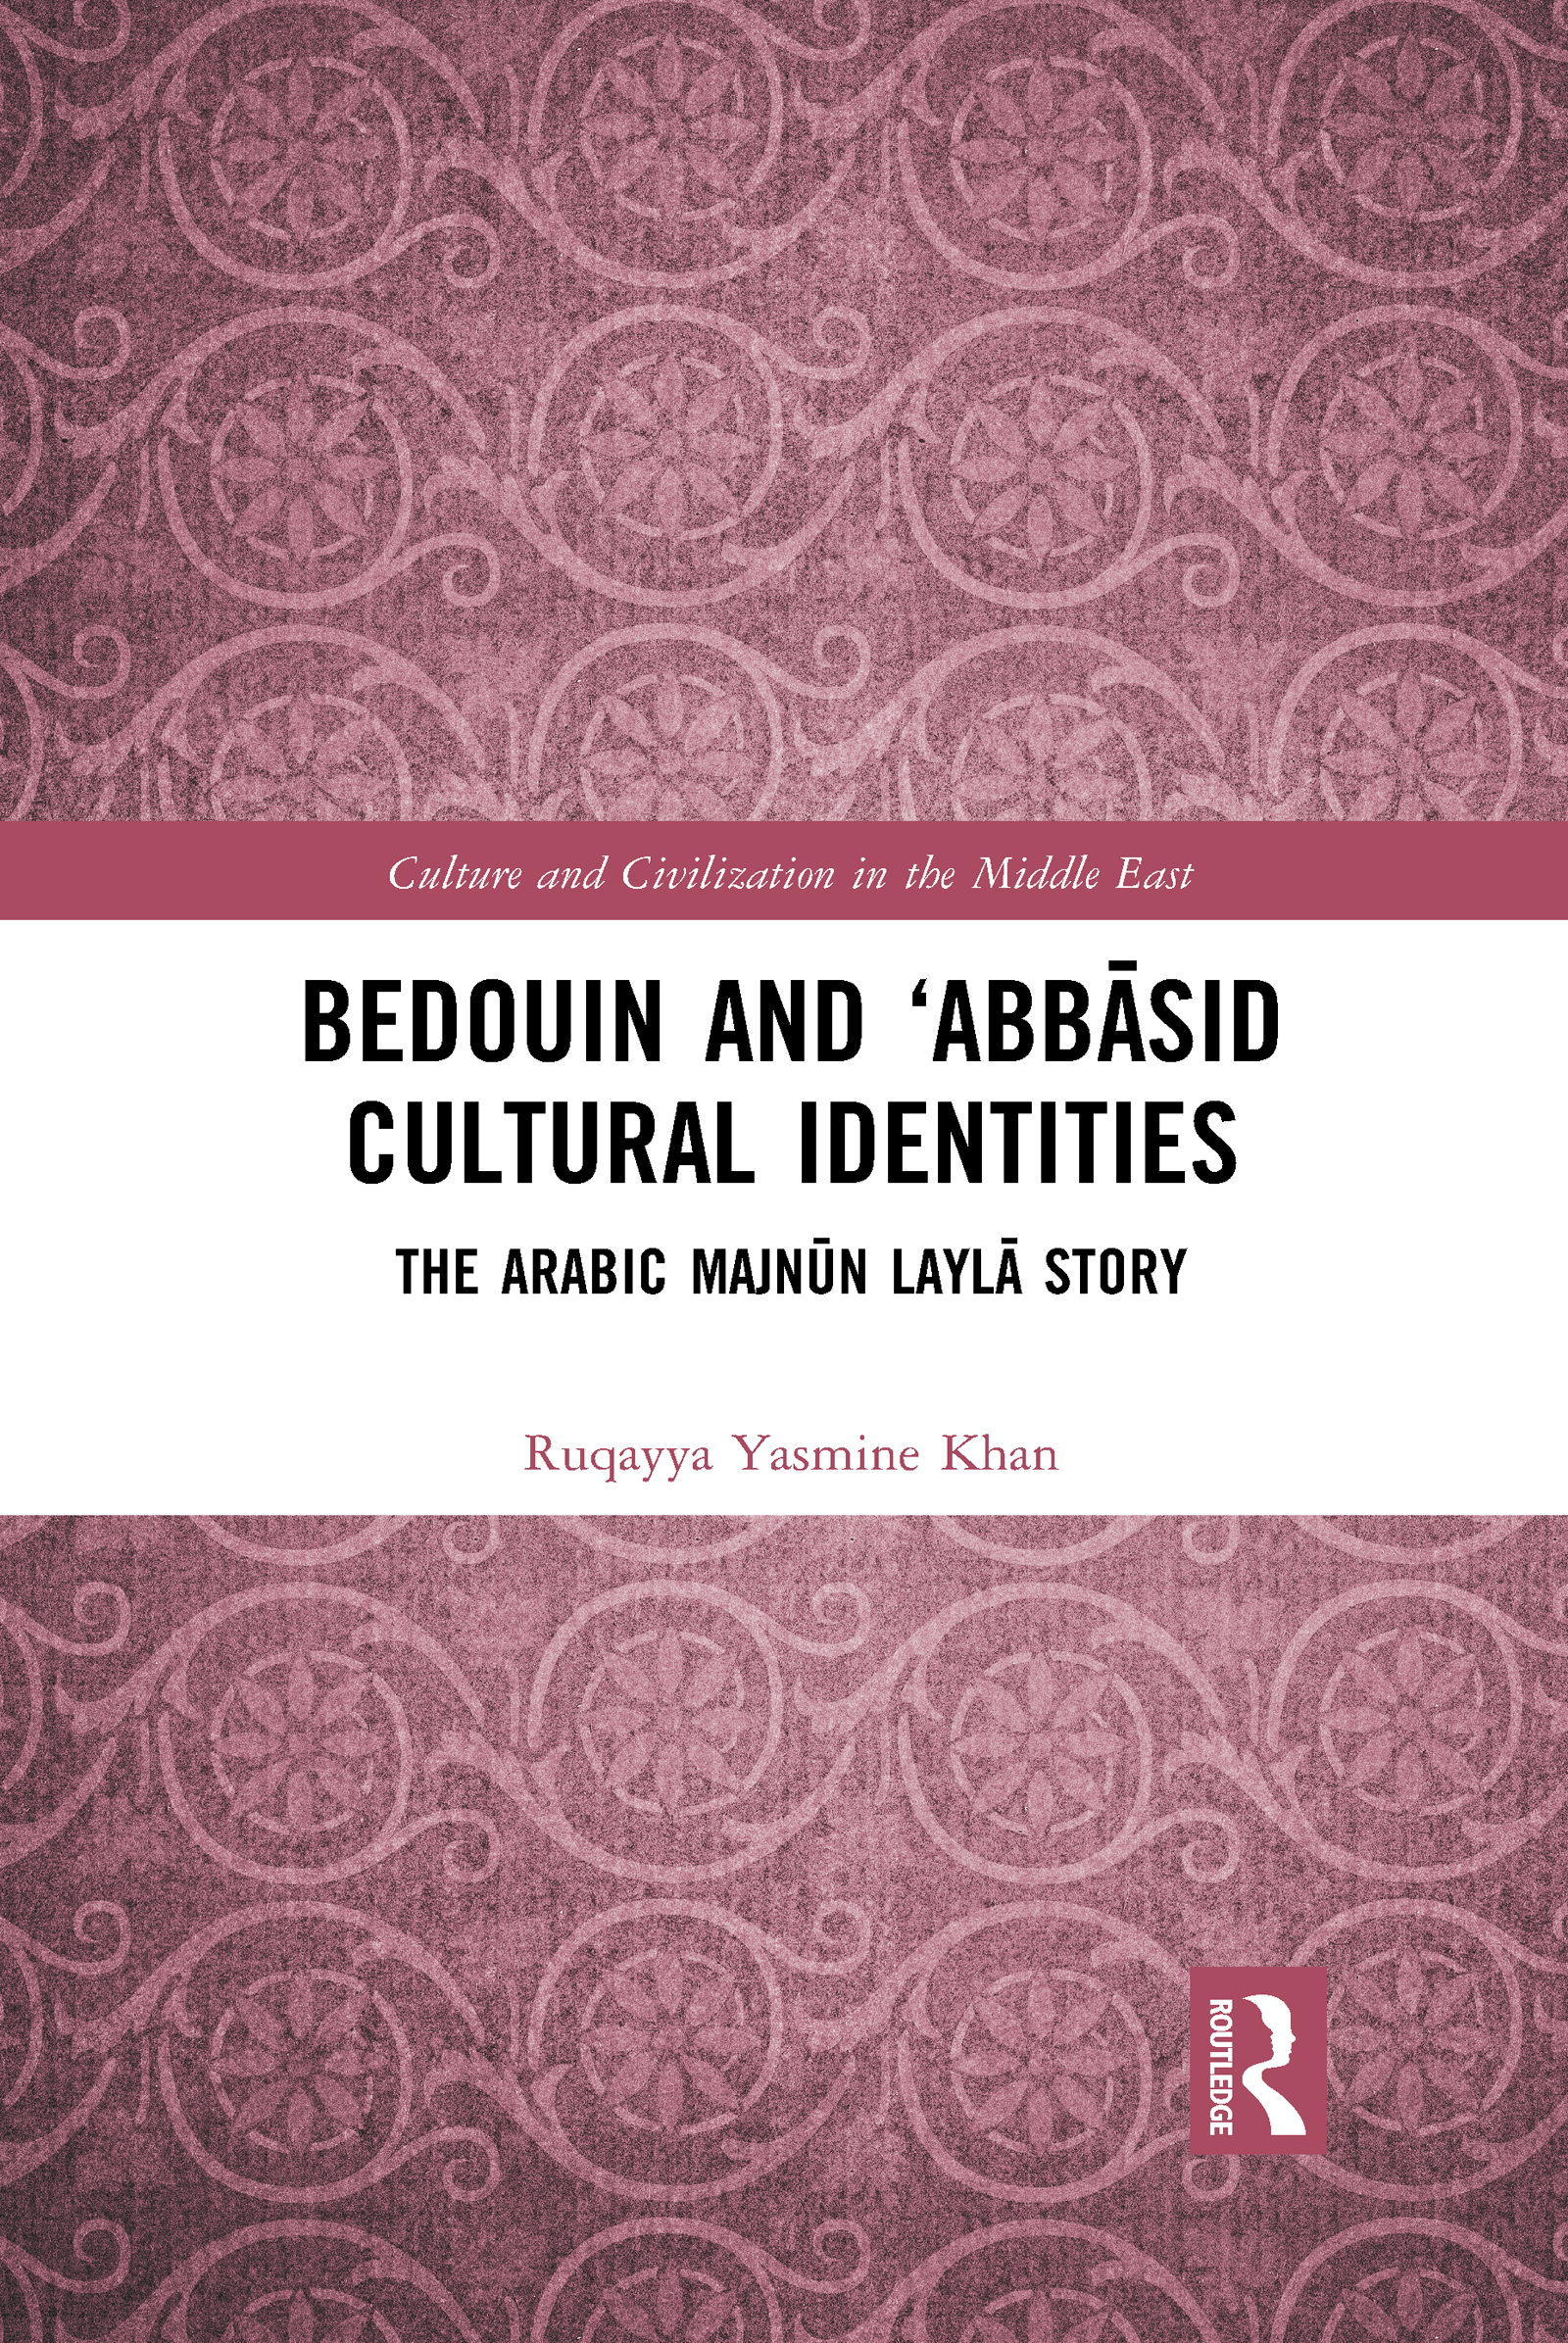 Bedouin and 'Abbāsid Cultural Identities